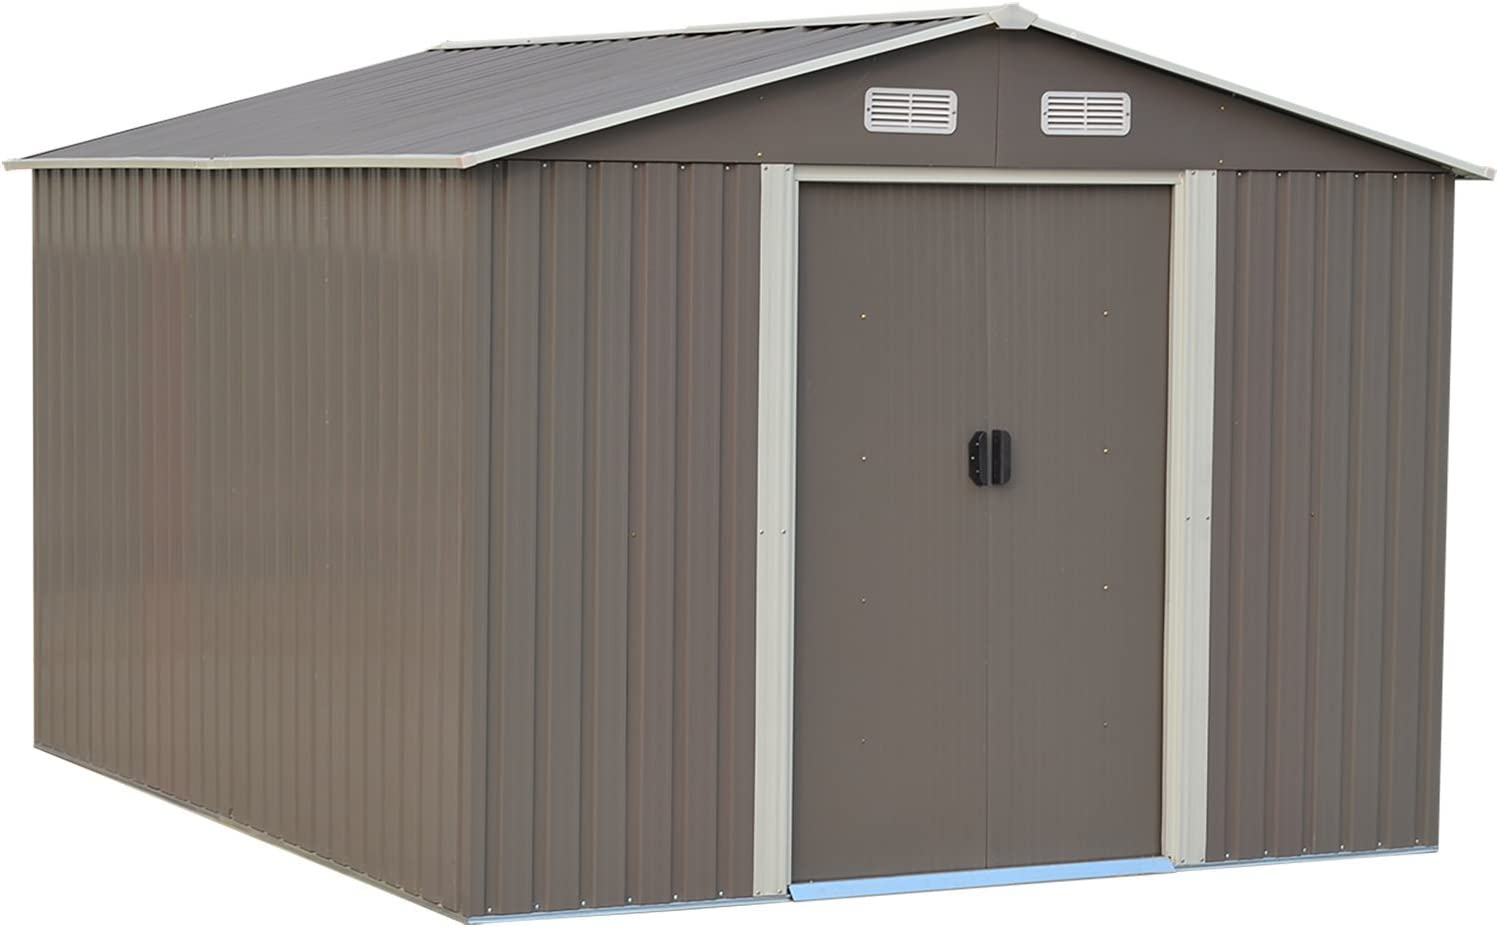 10X8 Ft Outdoor Storage Shed Yard Garden Steel Tool House Brown